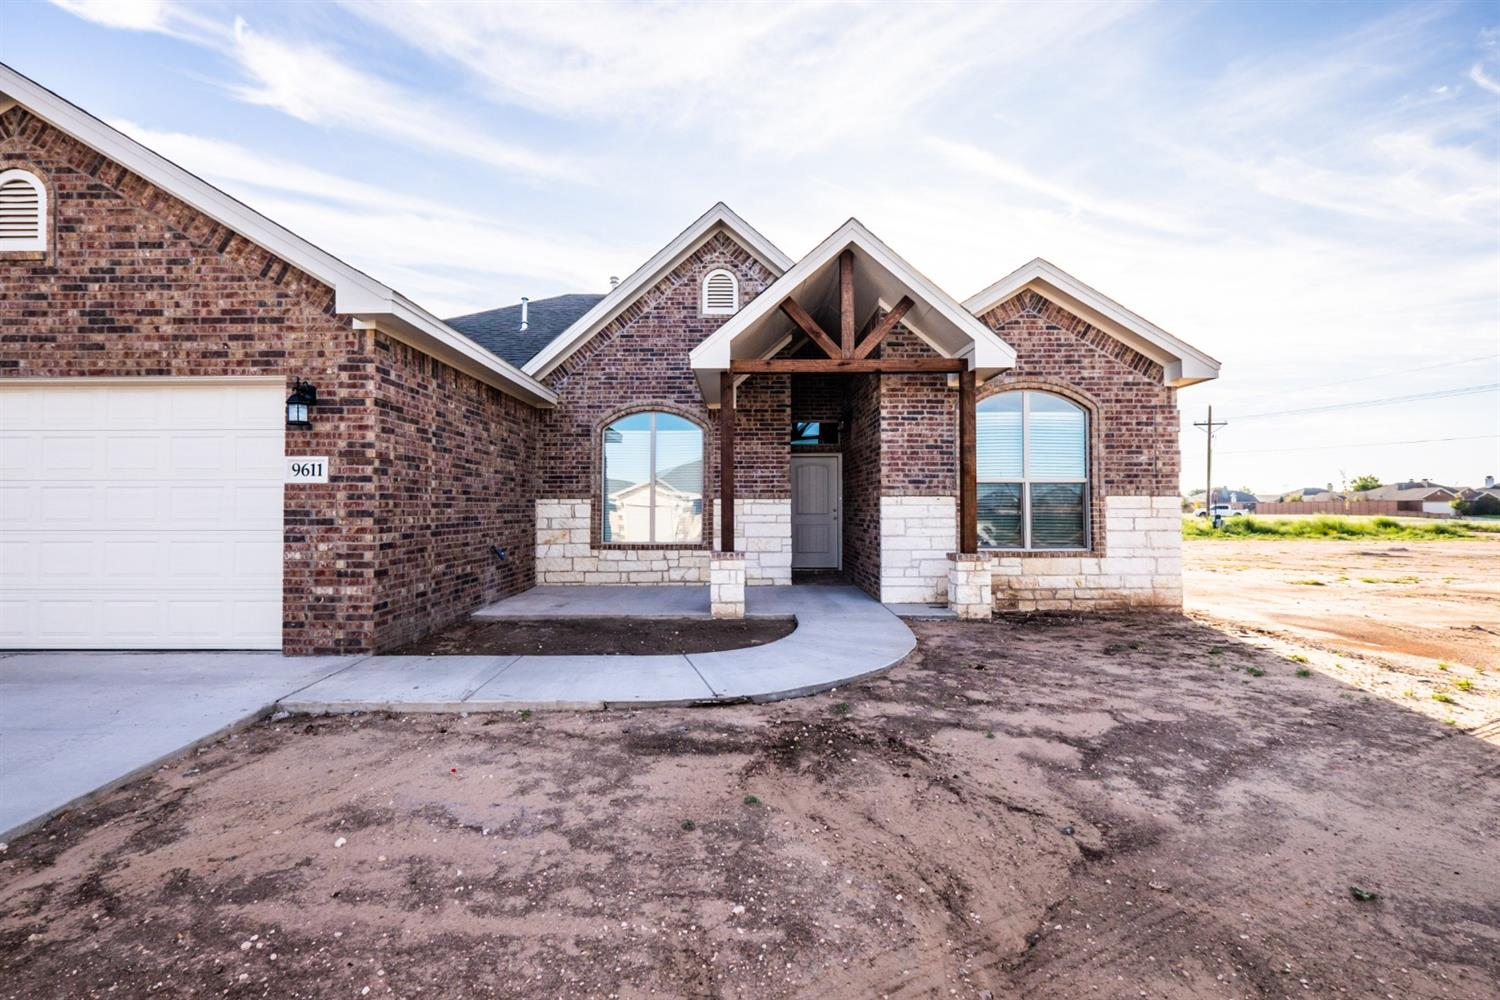 New construction 4 bedroom (1 guest-suite), 3 bathroom, and 2-car garage home in Day Estates neighborhood. Built for comfort and style, this beautiful brick and stone home has an open concept with 10' ceilings throughout entire house. Located in Frienship ISD, making it a great location! Special features include: double ovens in kitchen, electric fireplace with oak mantle, granite countertops throughout, walk-in closet in master bedroom, a jet tub in master bath, and vinyl plank flooring in living room and kitchen.